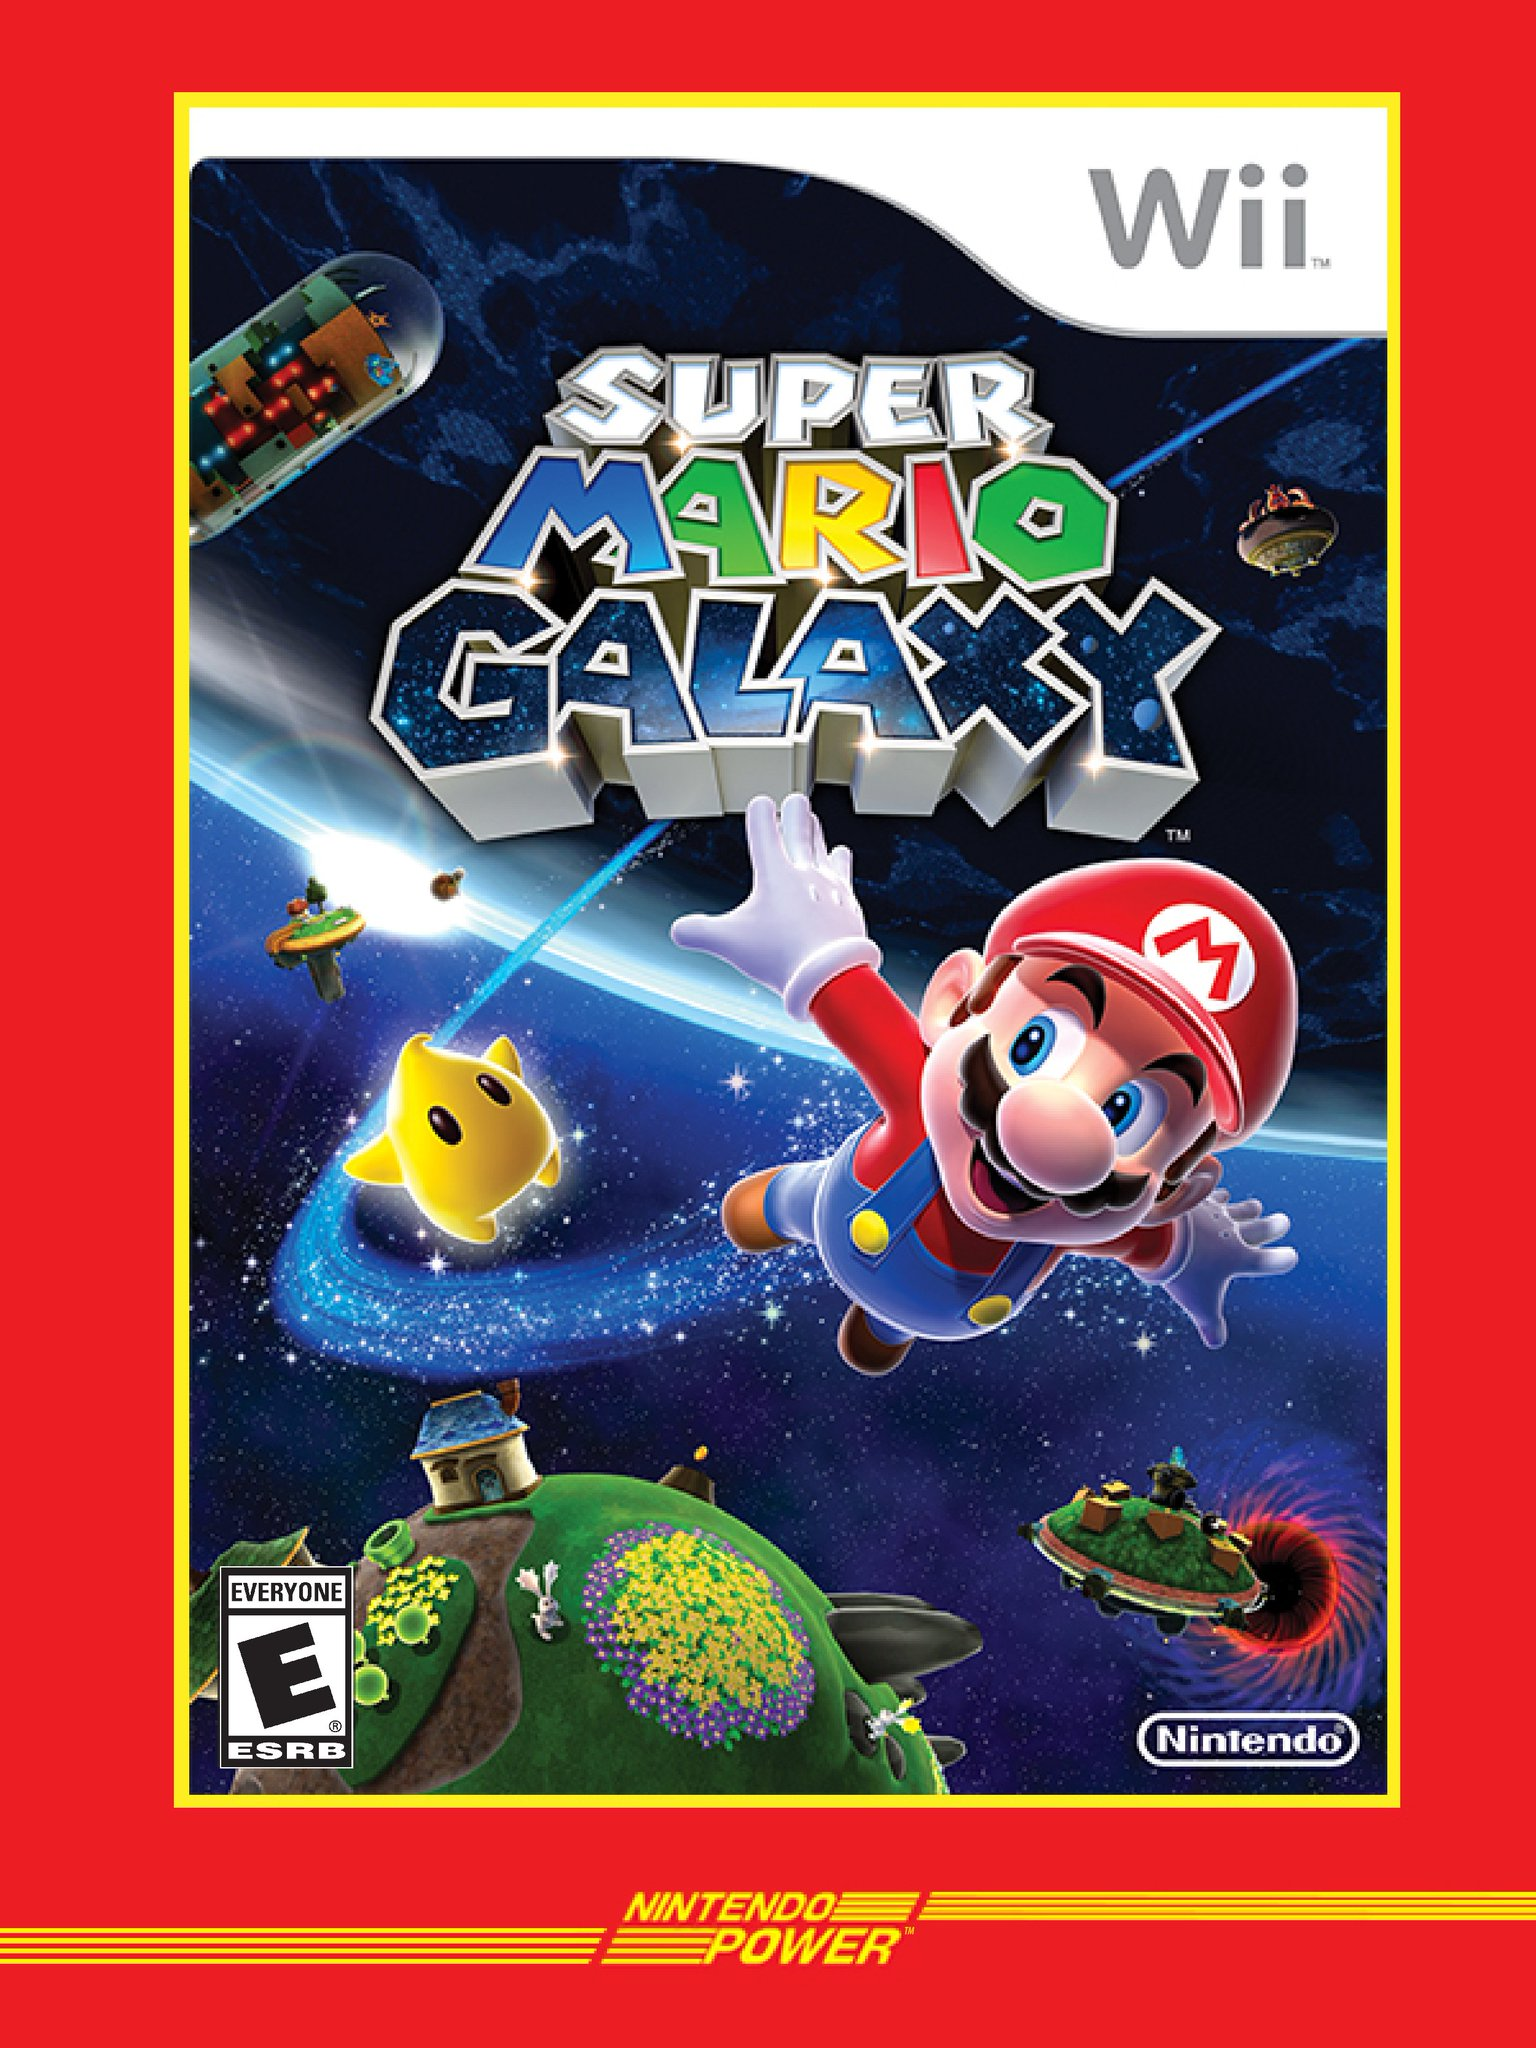 Wa-hoo! Happy 10th anniversary to Super Mario Galaxy! #NintendoPower https://t.co/TnckDuyN4V